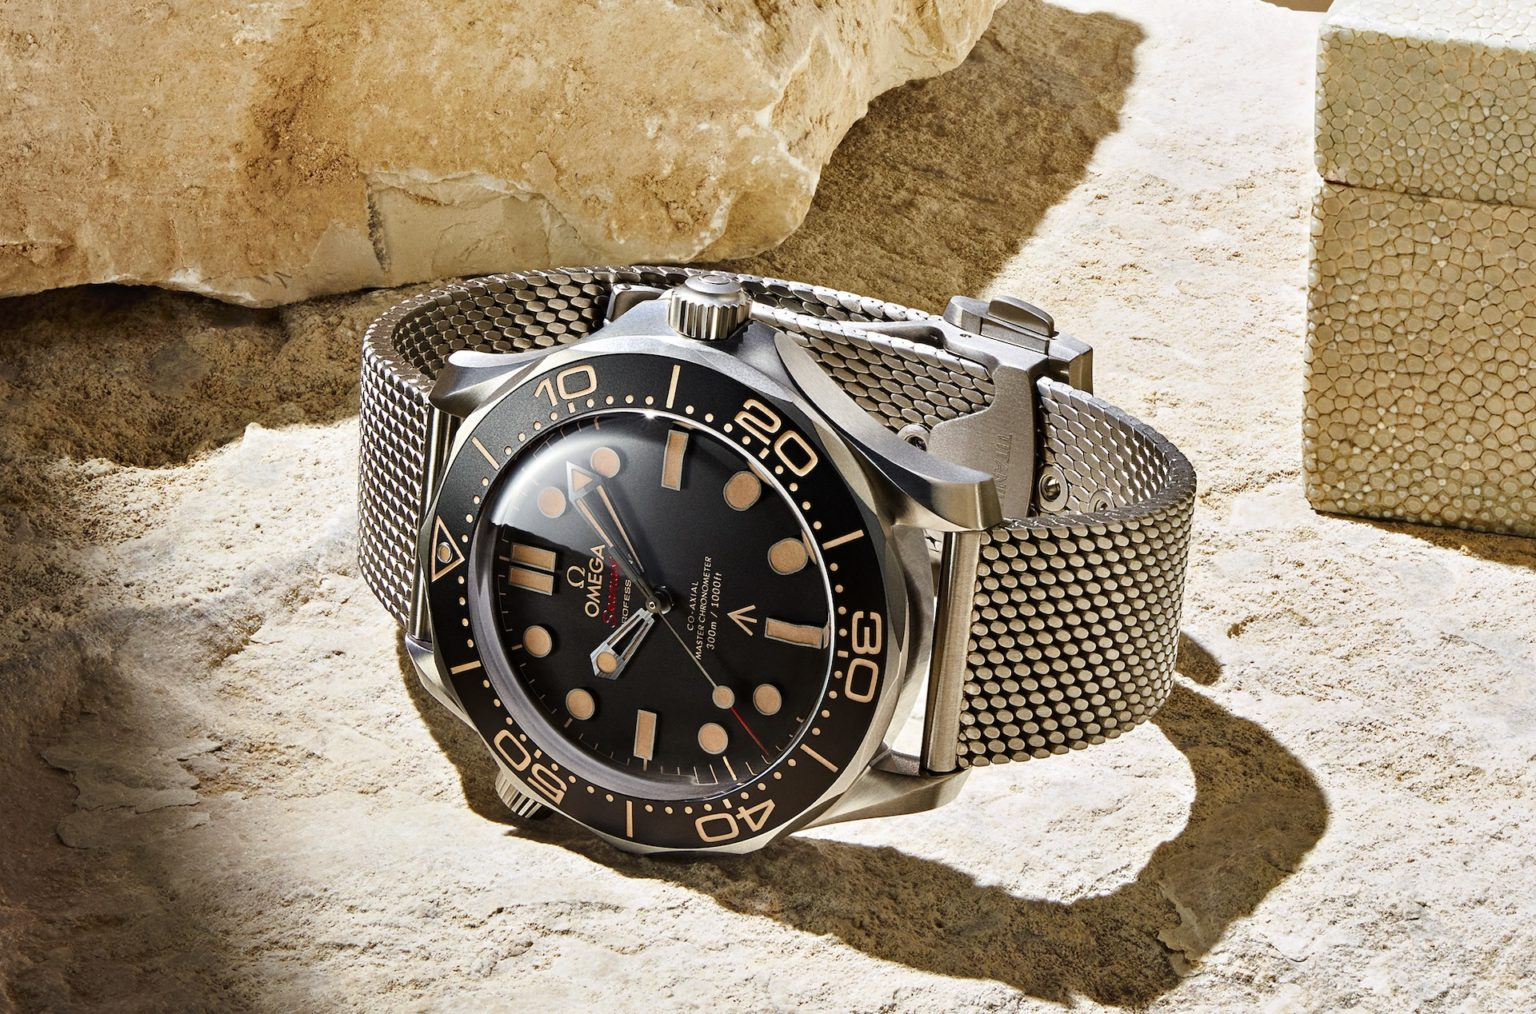 10 of the best sports watches of 2020 over $10K, with Rolex, Grand Seiko and Moser